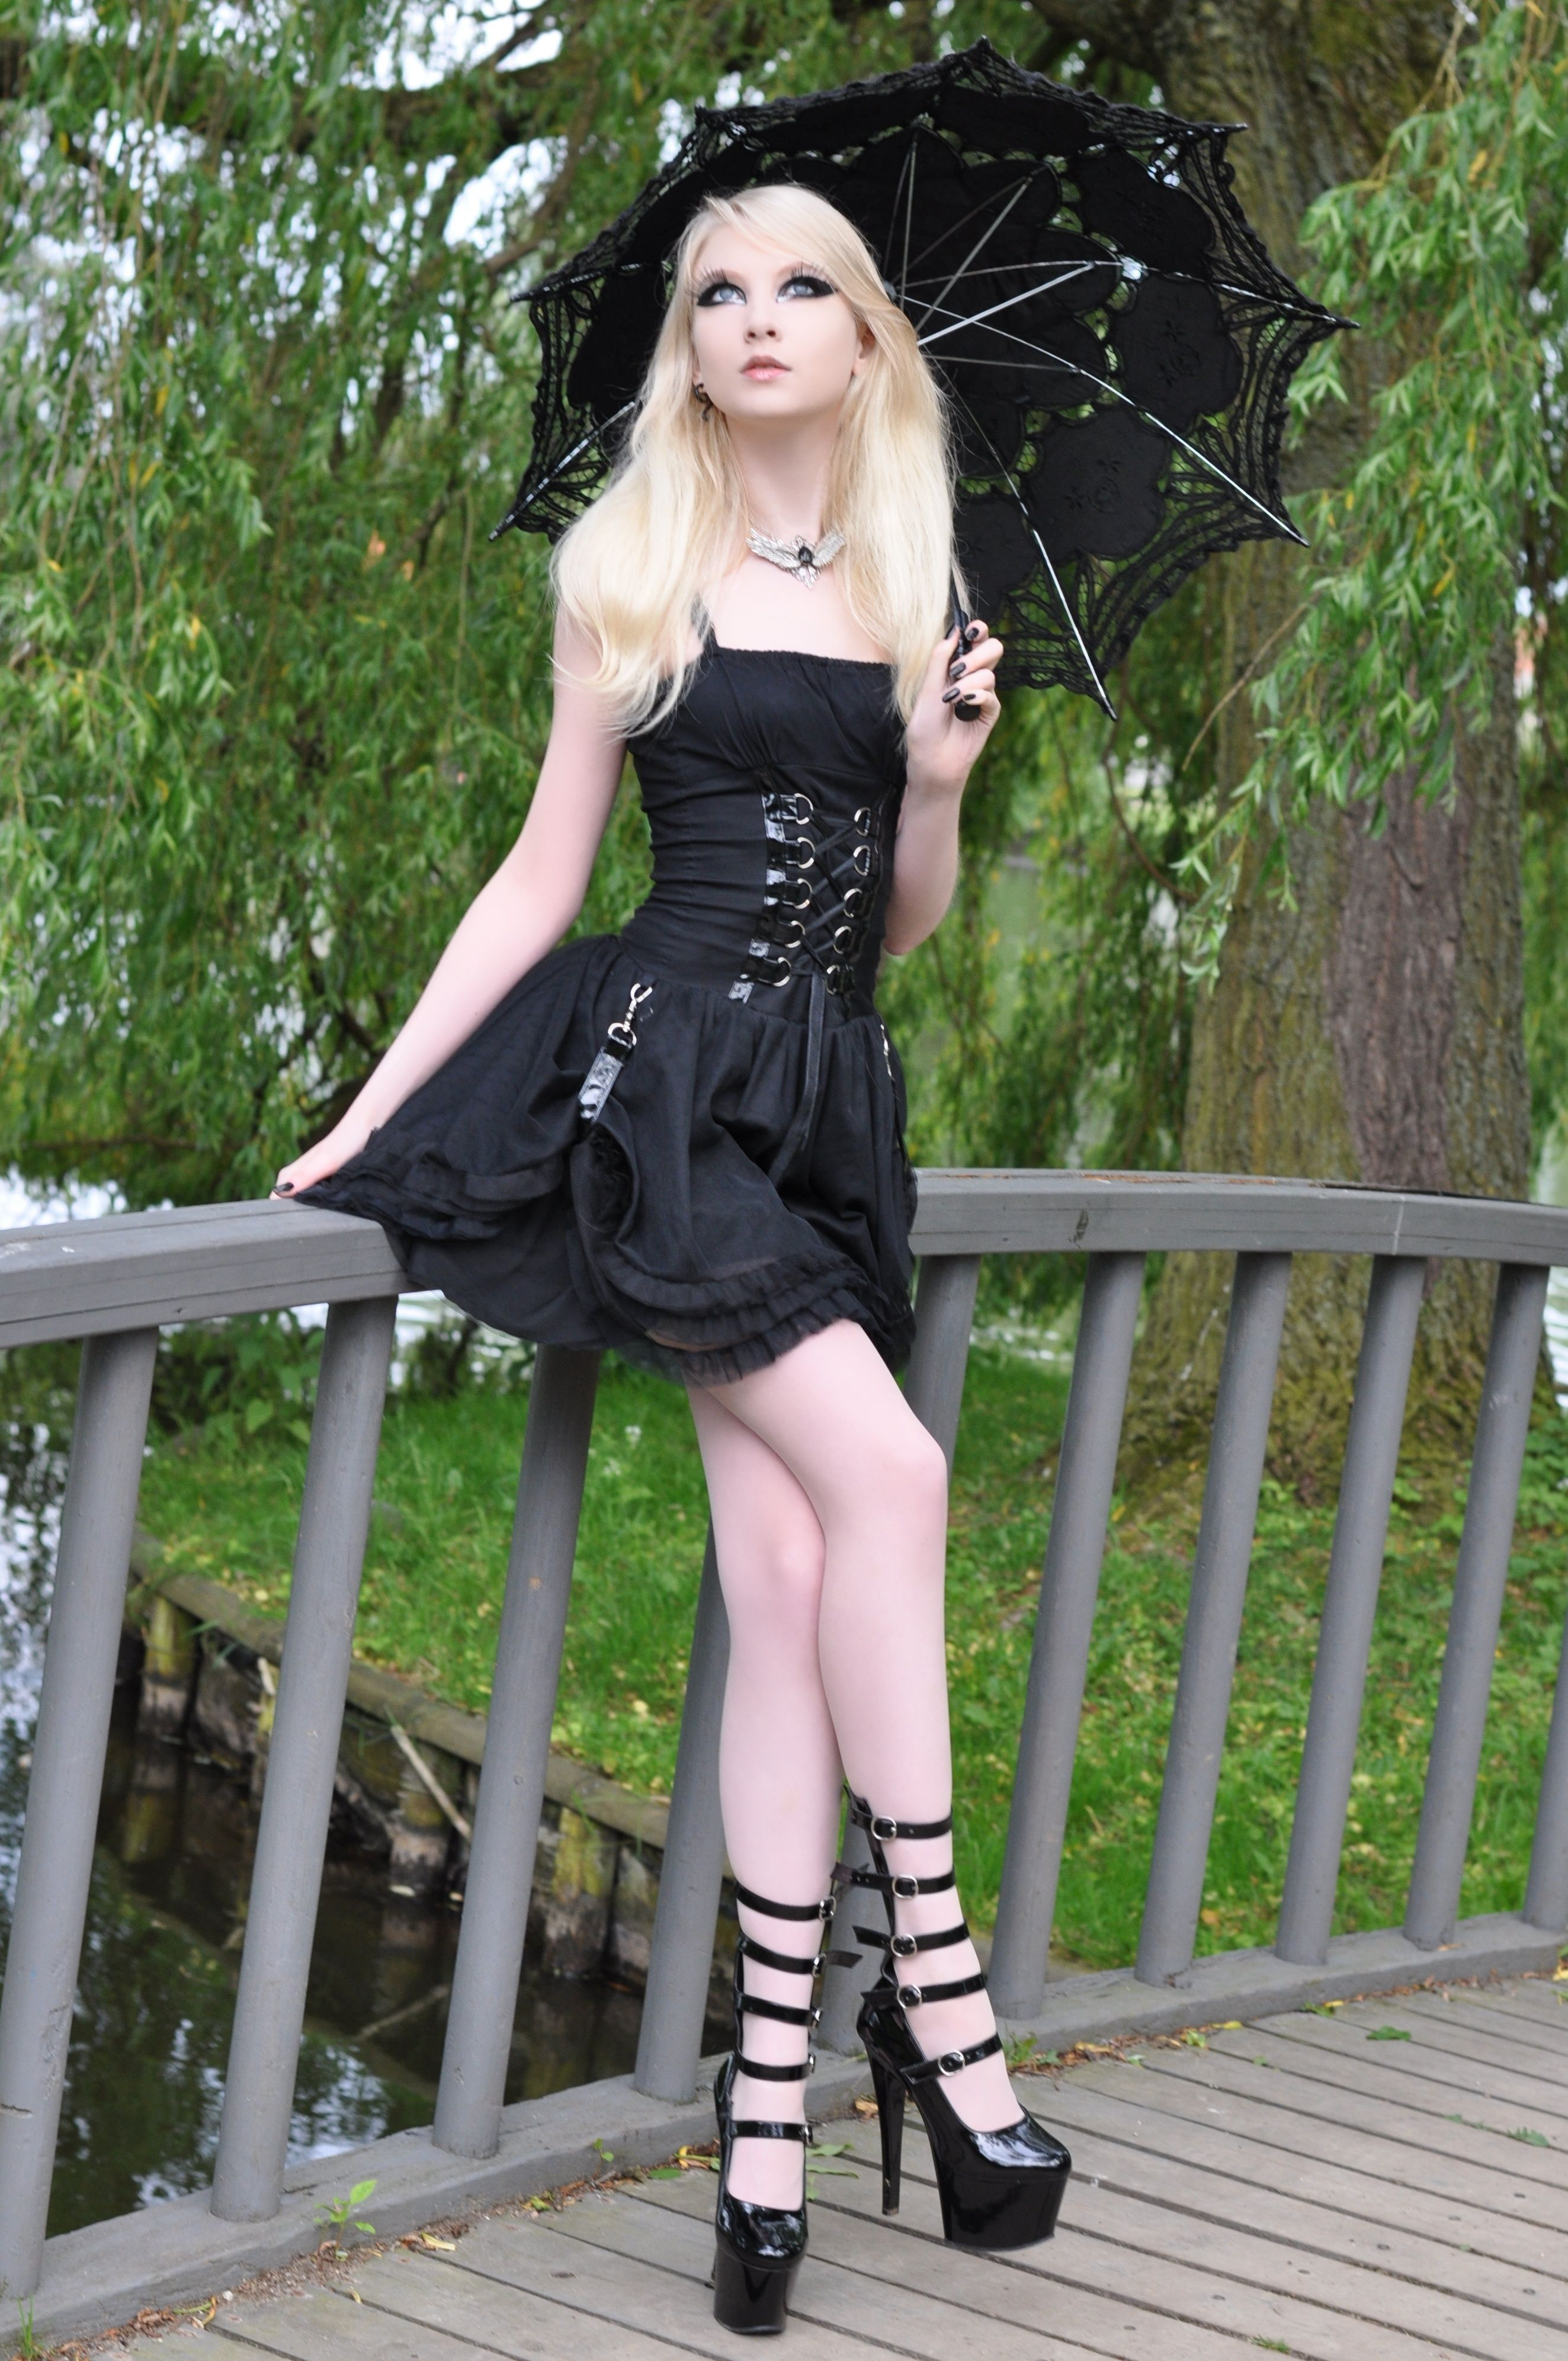 gothic-picture-teen-netherland-porno-teen